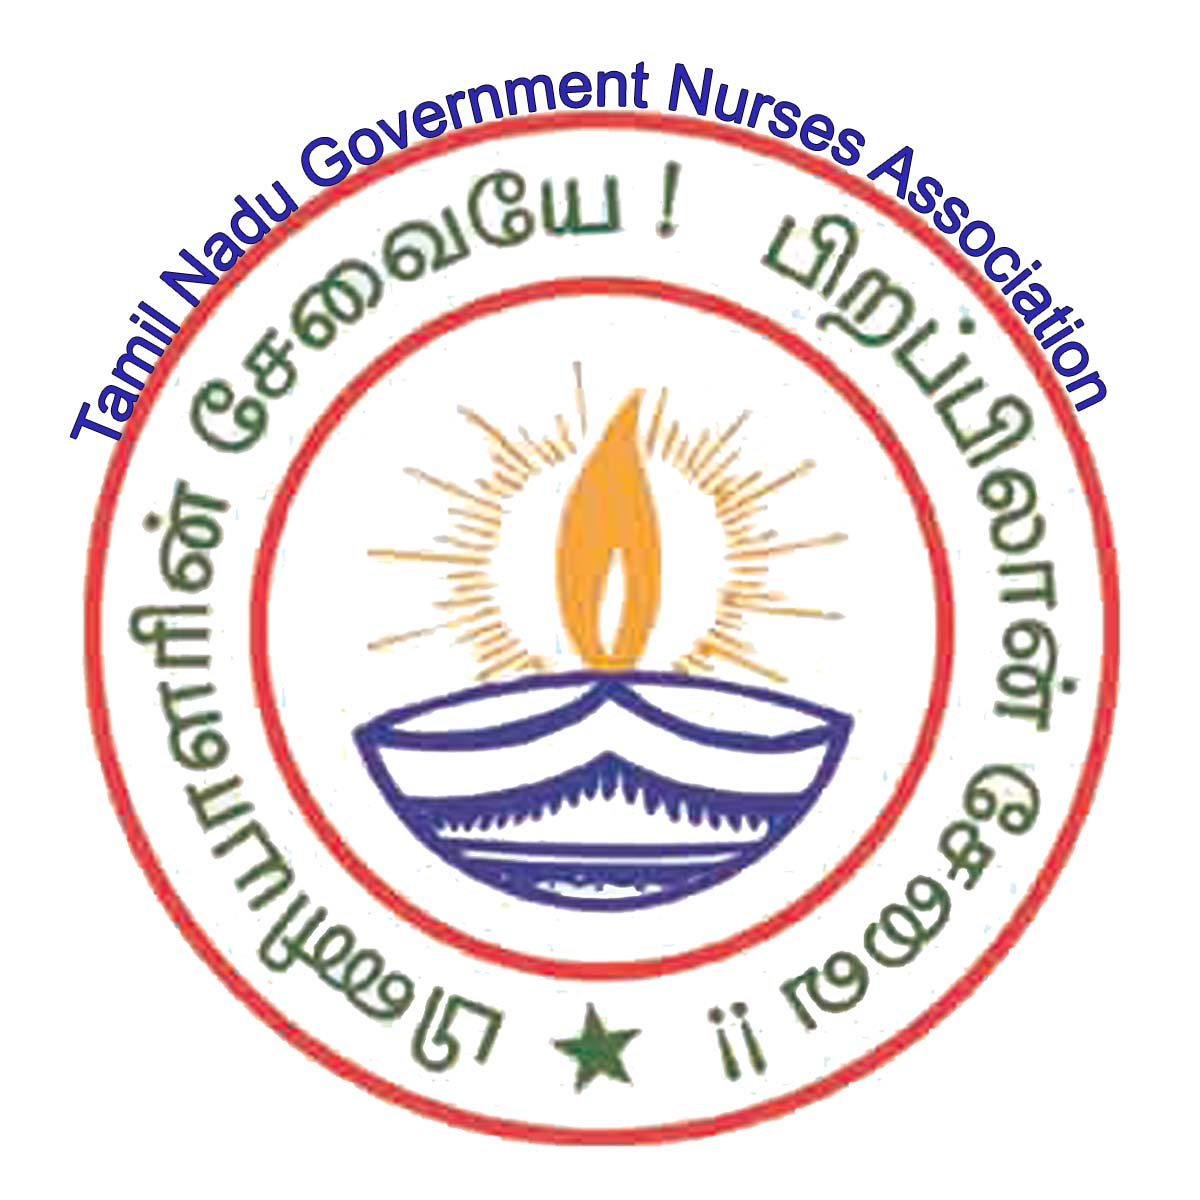 Risk allowances to the staff working in tb hospitals tb tamil nadu government nurses association is a century old organization it is being work for the nurses this association is registered with madras biocorpaavc Gallery